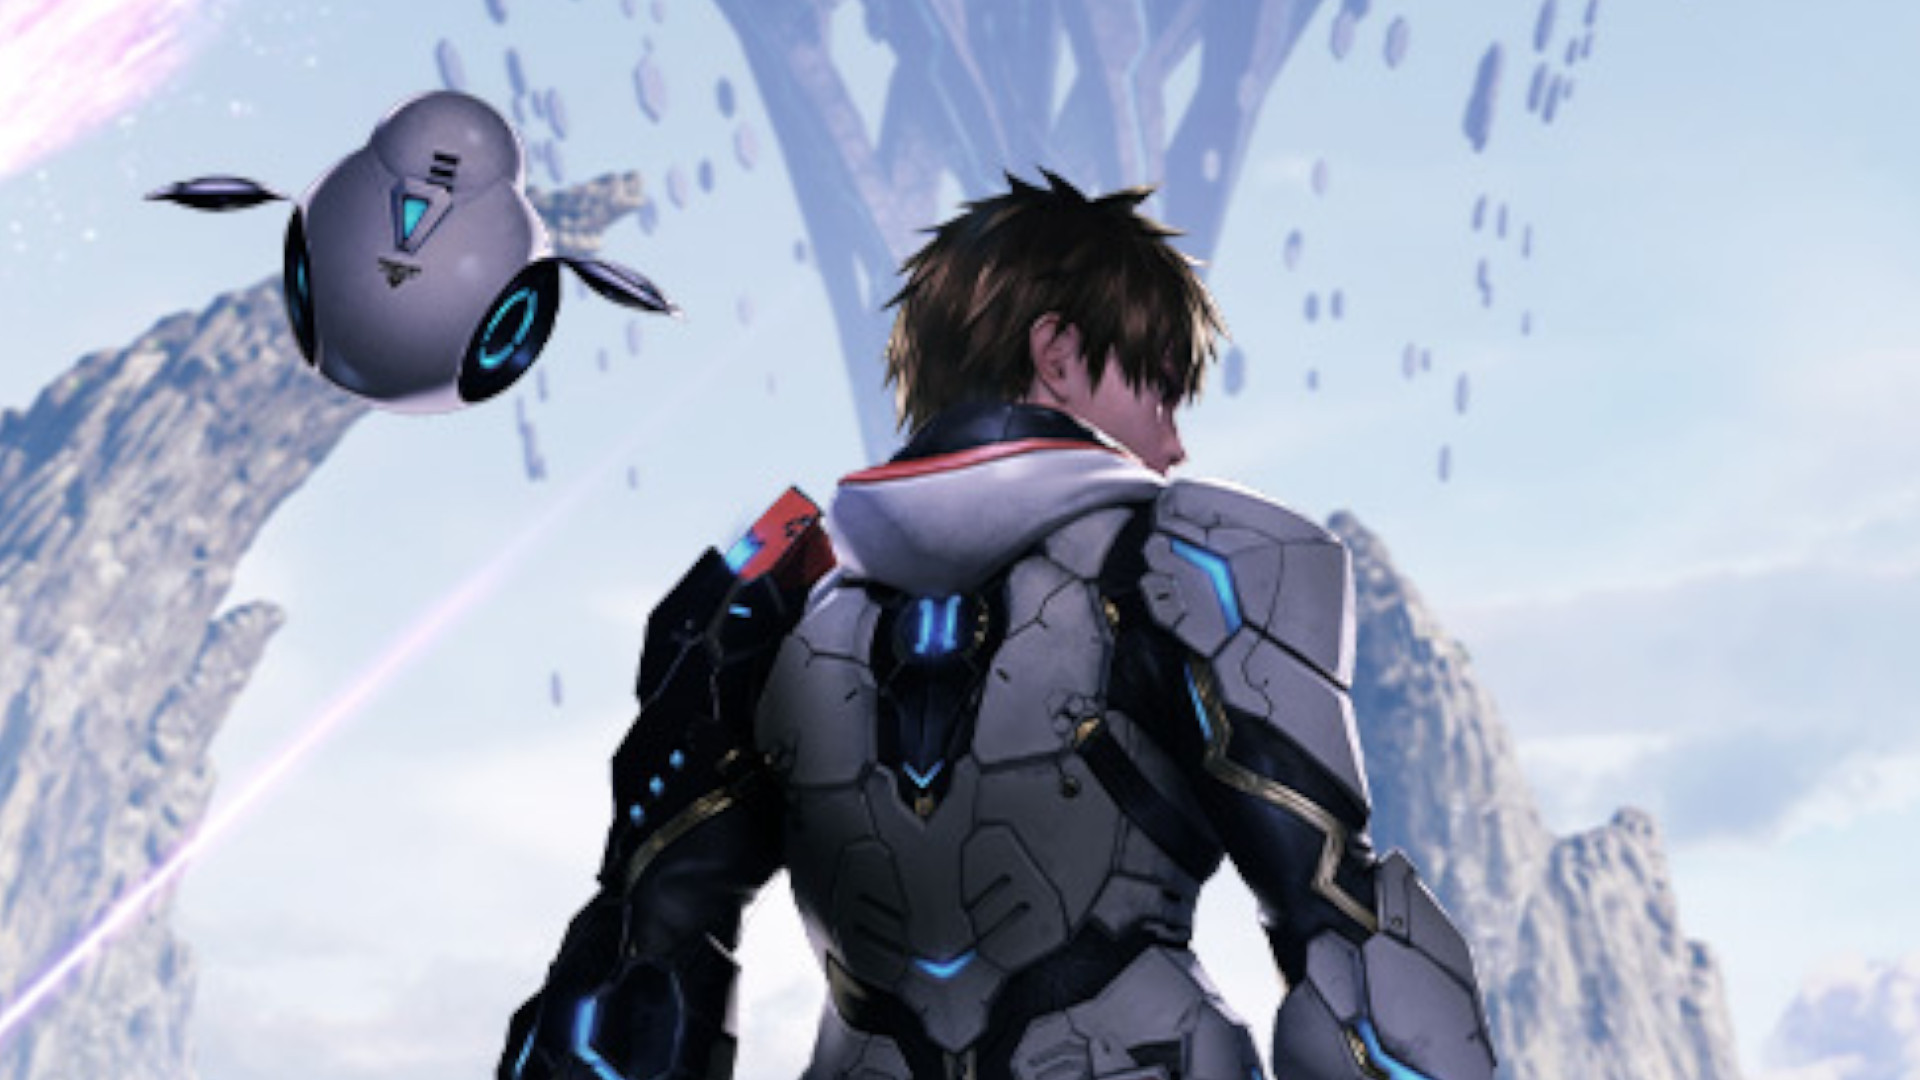 Phantasy Star Online 2: New Genesis gets a free benchmark and character creator in May